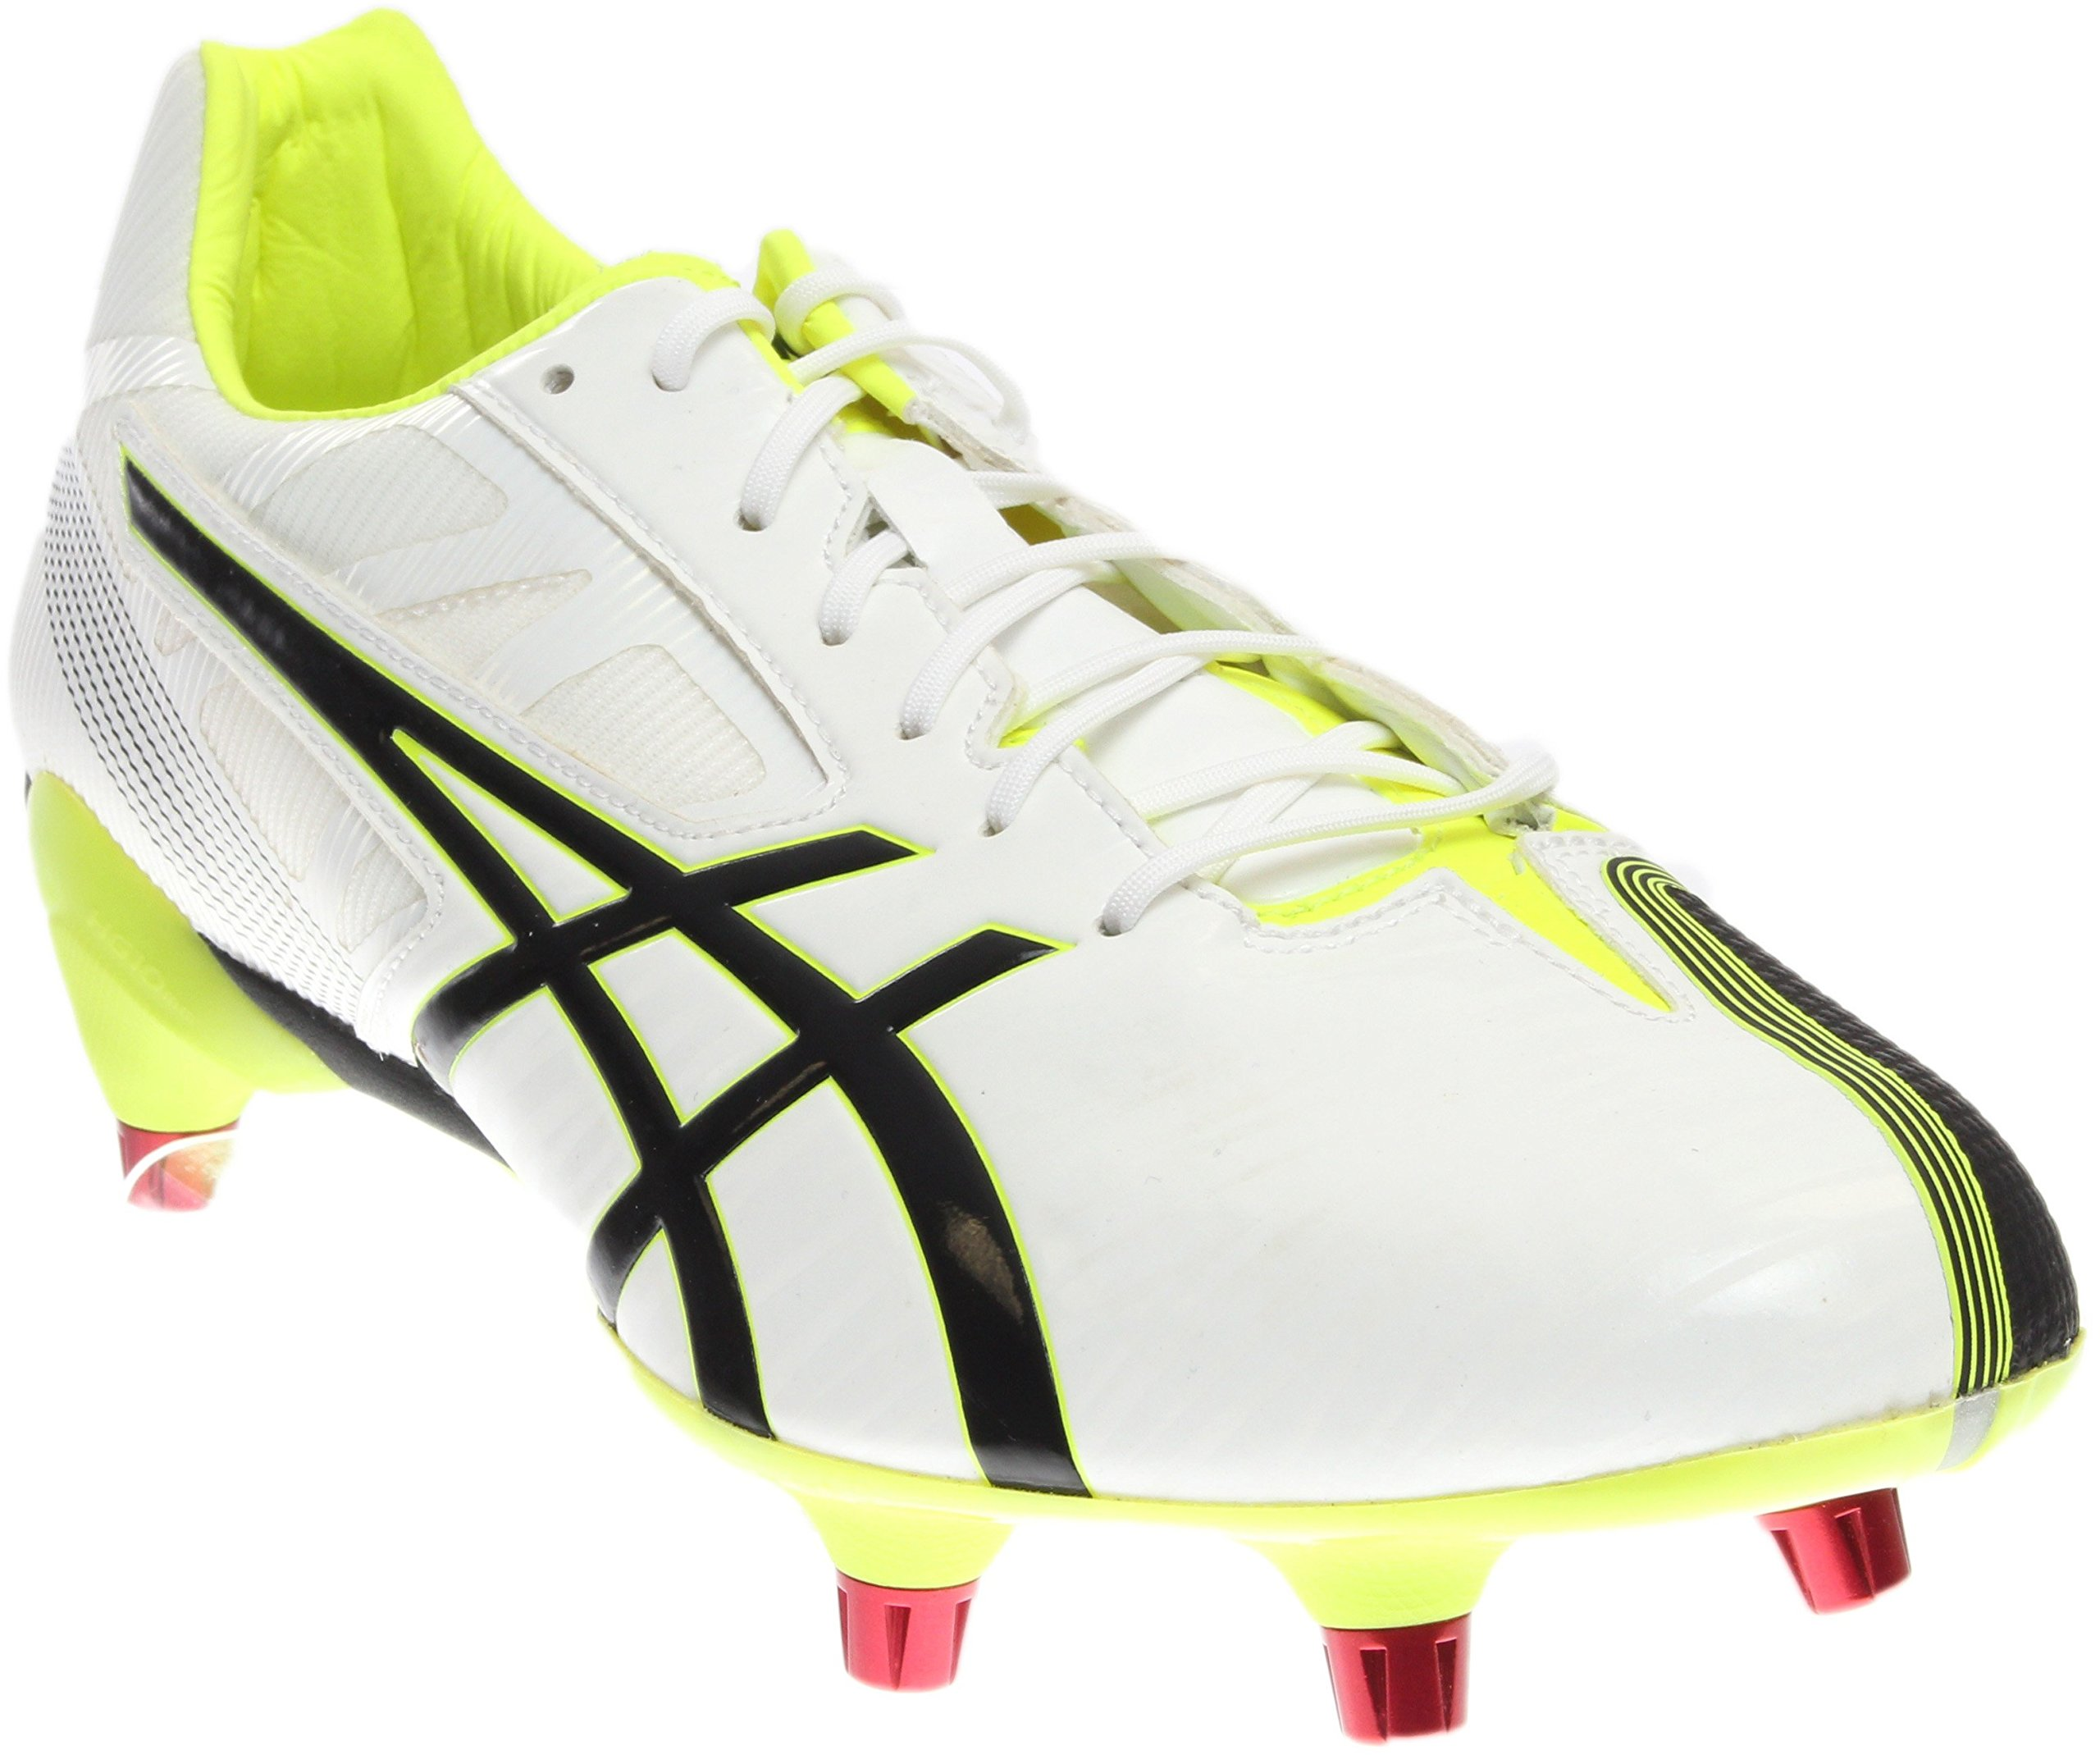 ASICS Men's GEL-Lethal Speed White/Black/Flash Yellow Rugby Shoe - 11 D(M) US